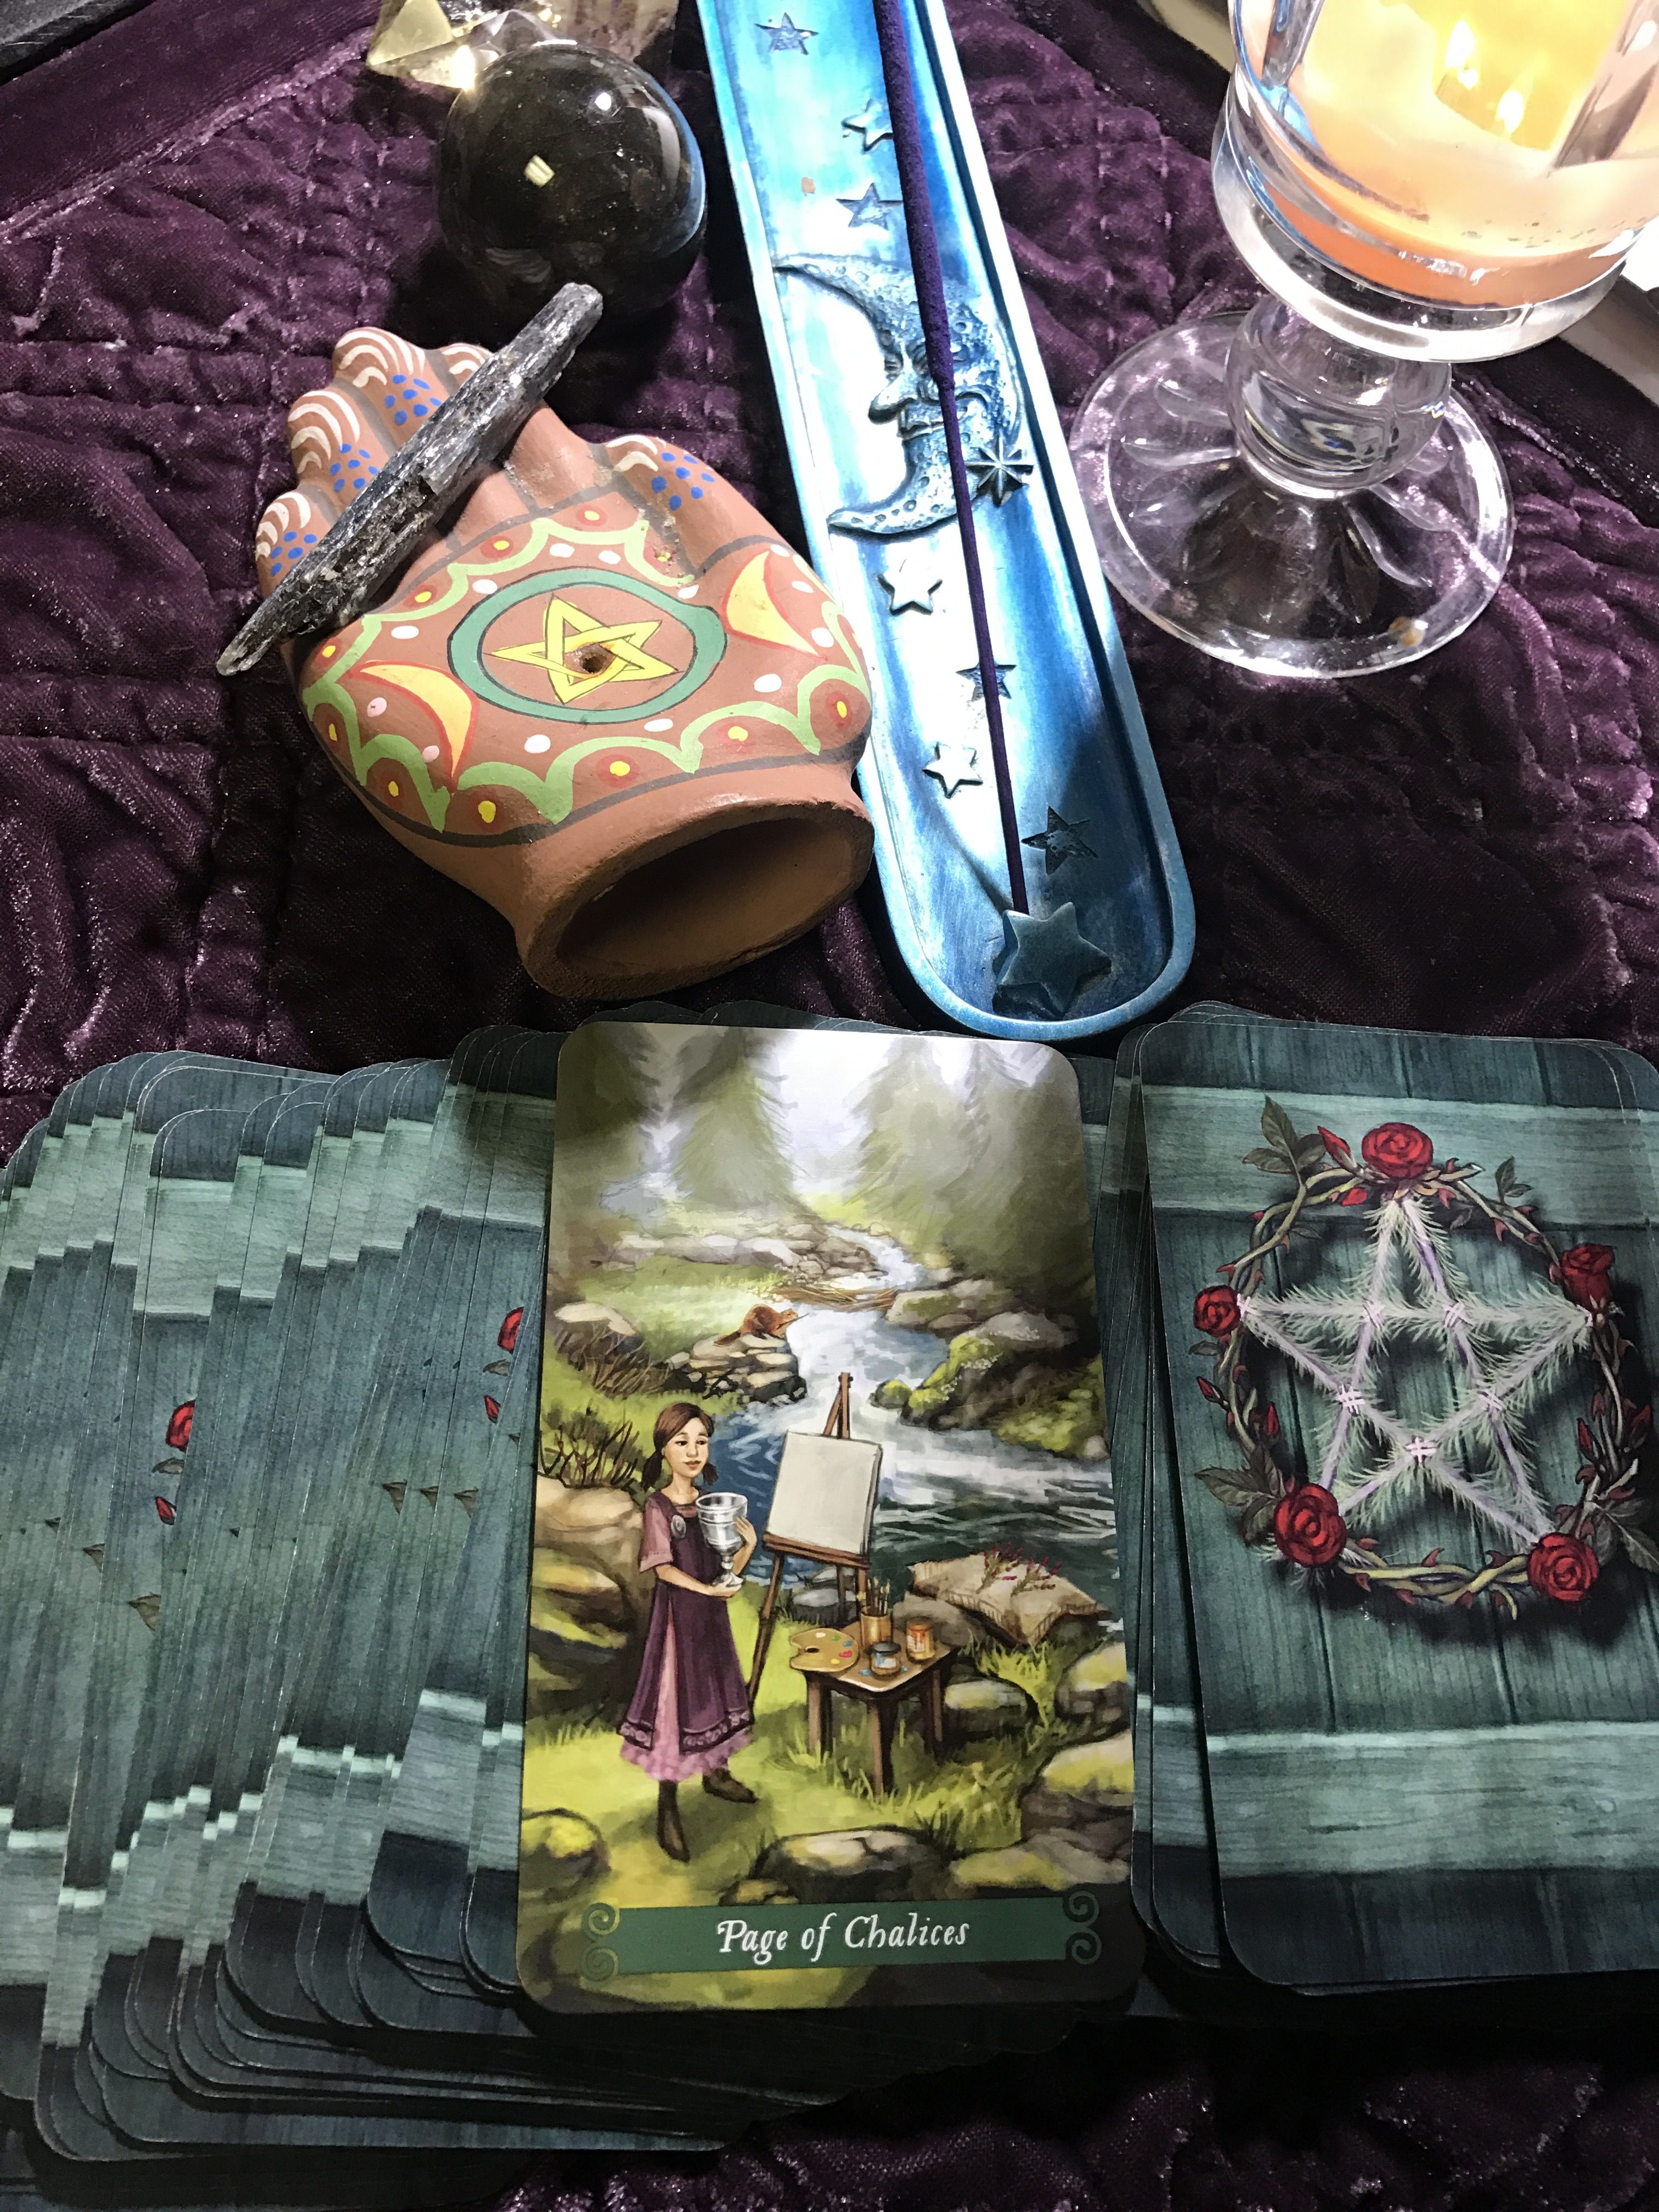 Daily card pull page of chalices be inspired flow with